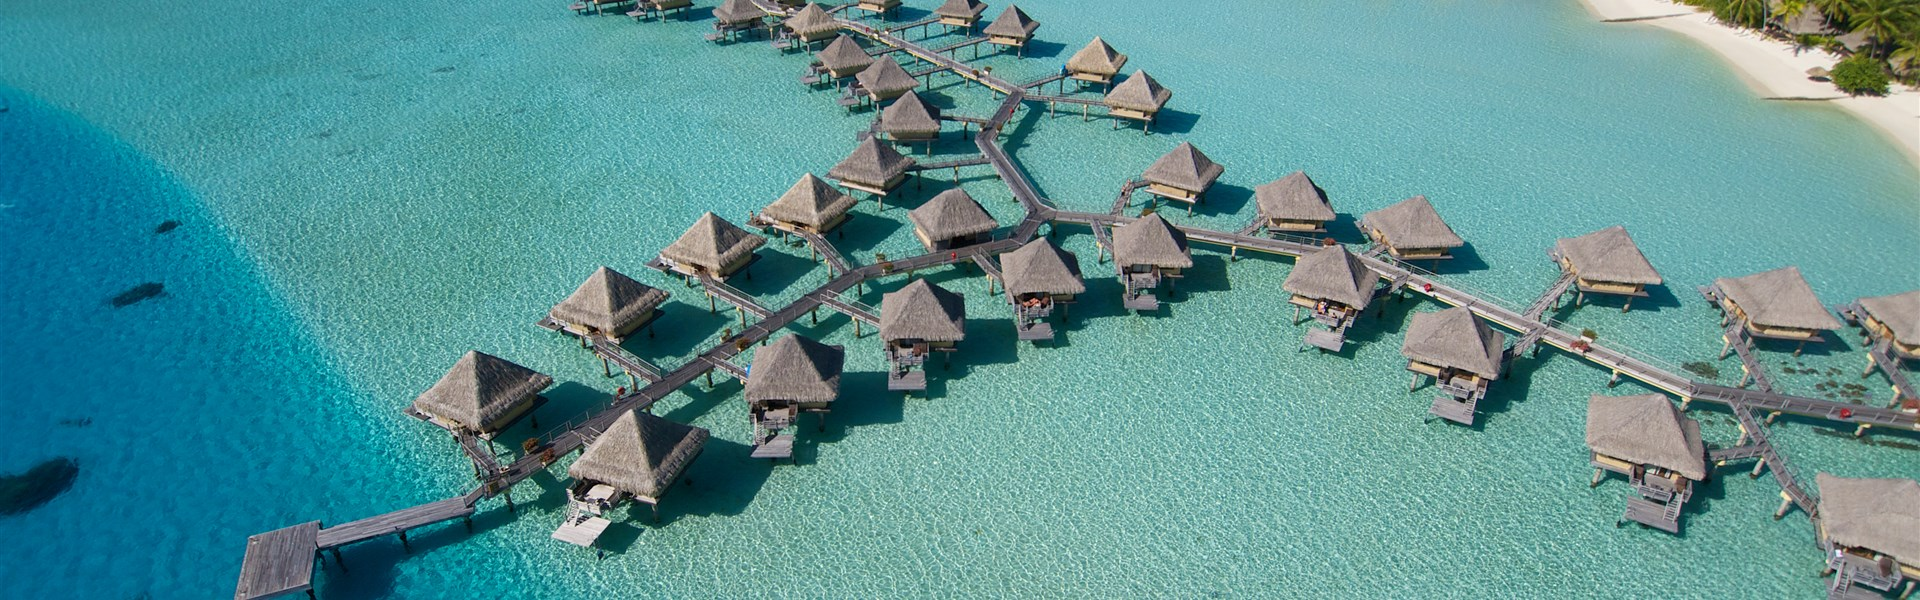 Intercontinental Le Moana Bora Bora Resort - ostrov Bora Bora -